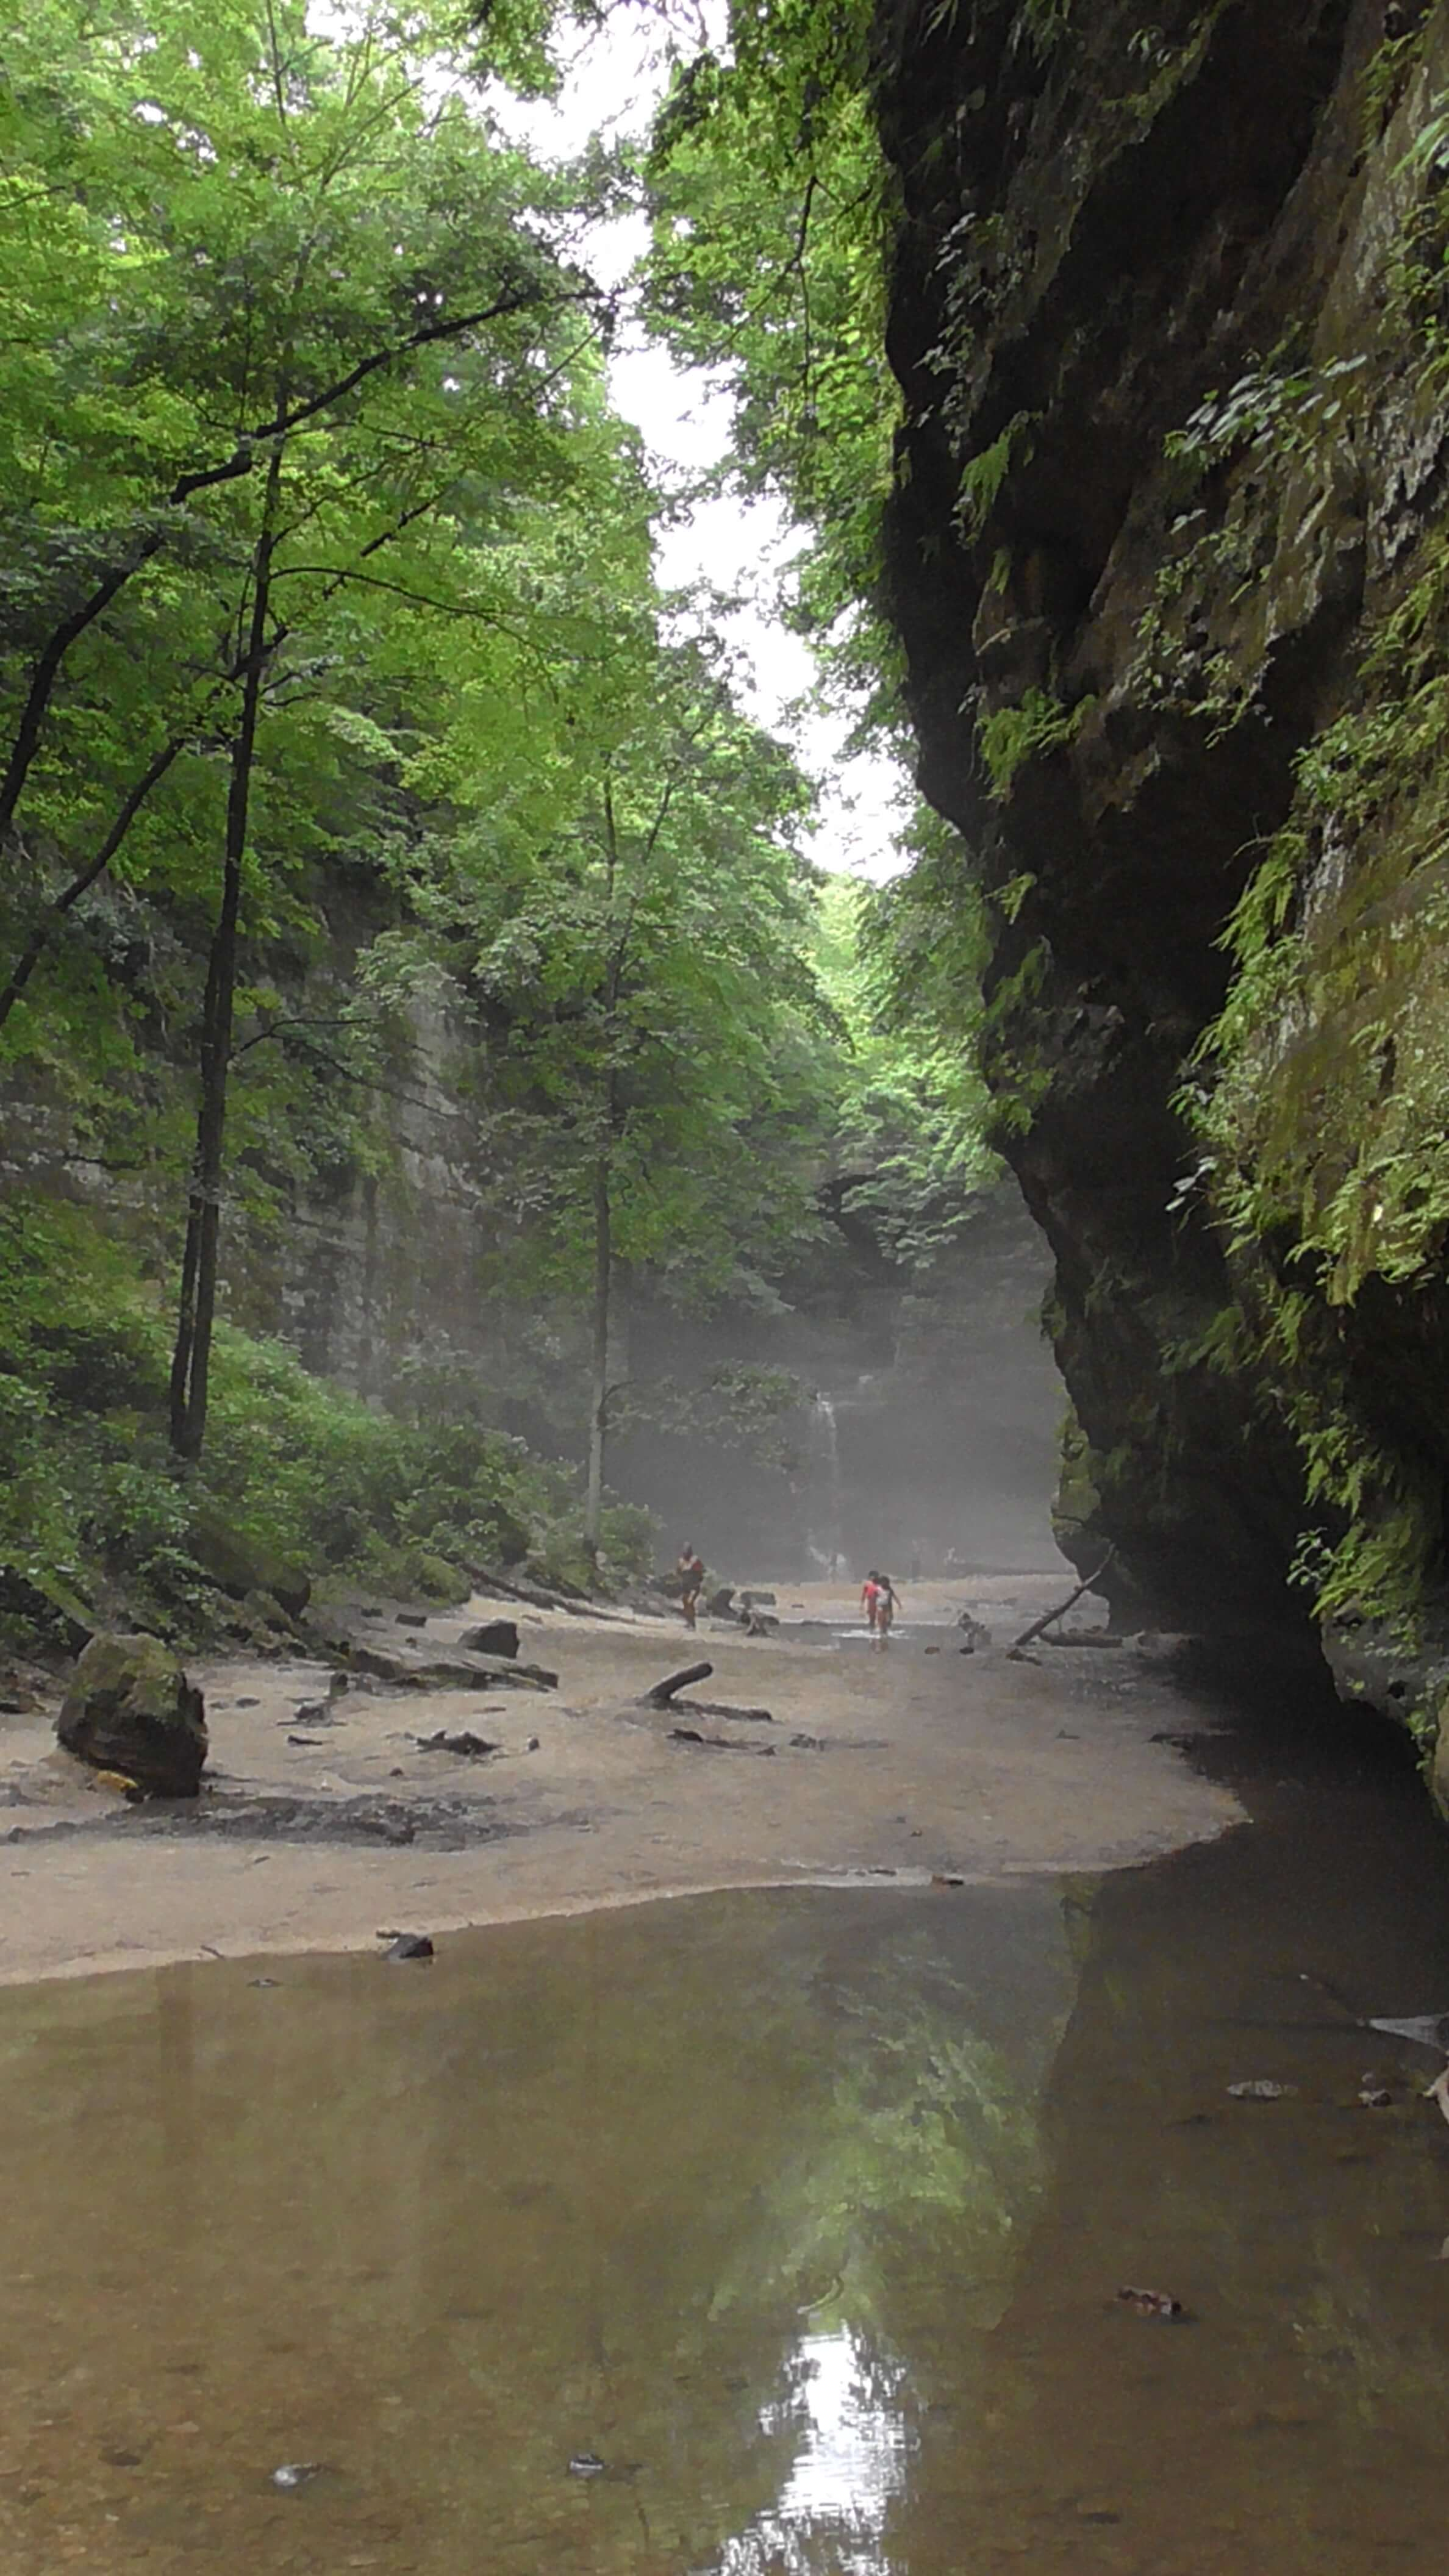 Dell's Creek Canyon, Matthiessen State Park